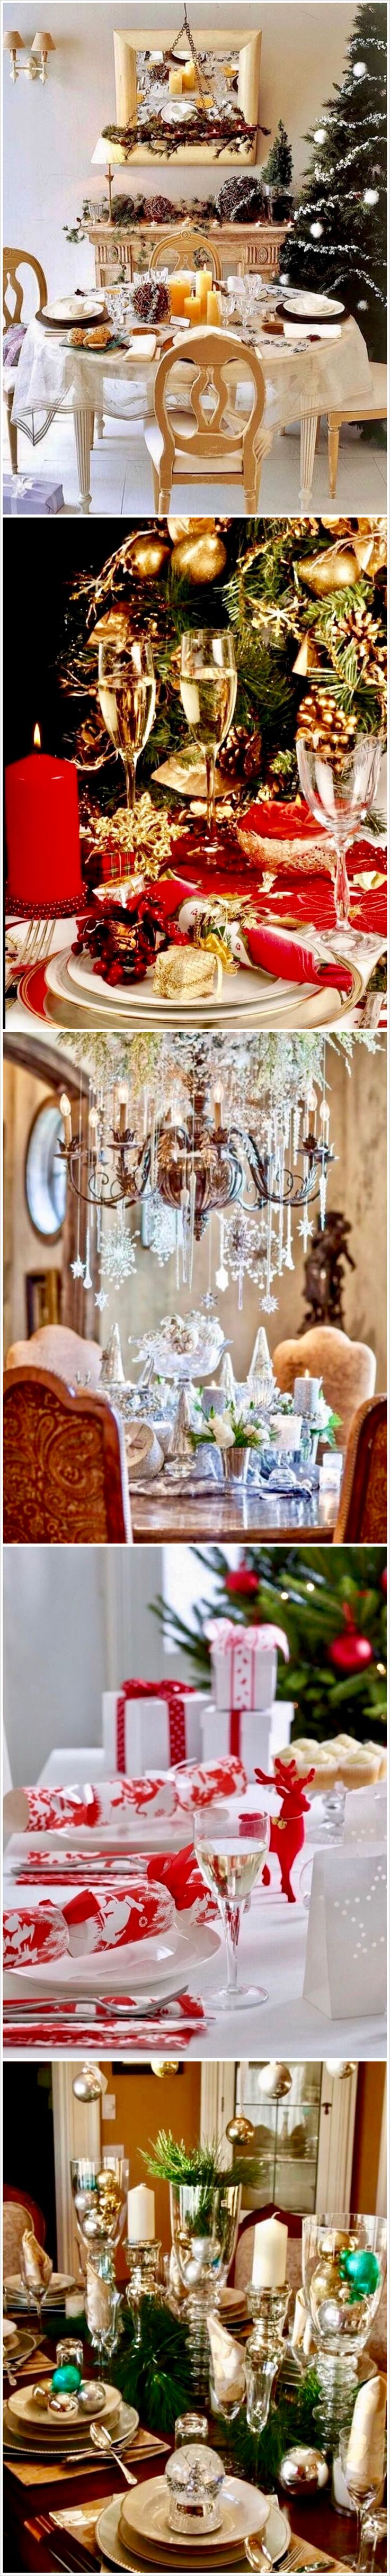 921 best christmas table decorations images on pinterest Best table decoration ideas